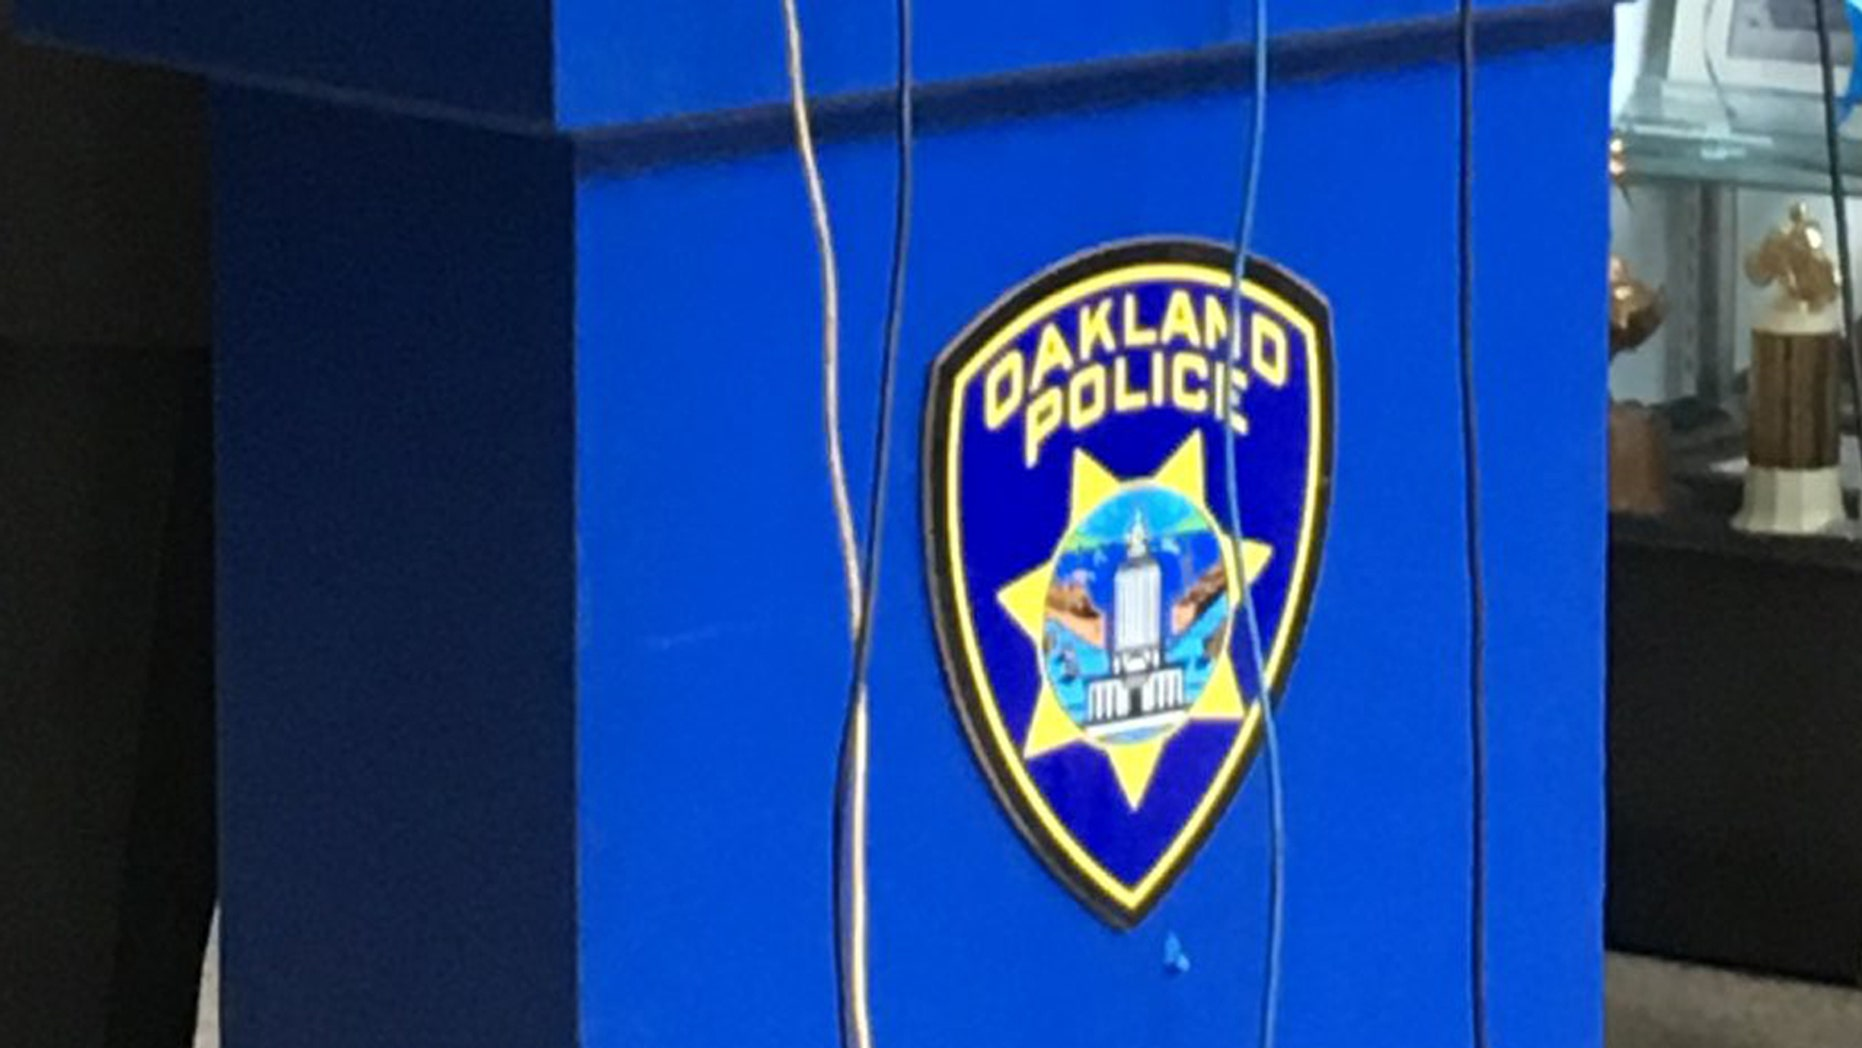 A body was found across the street from the Oakland Police Department on Tuesday.